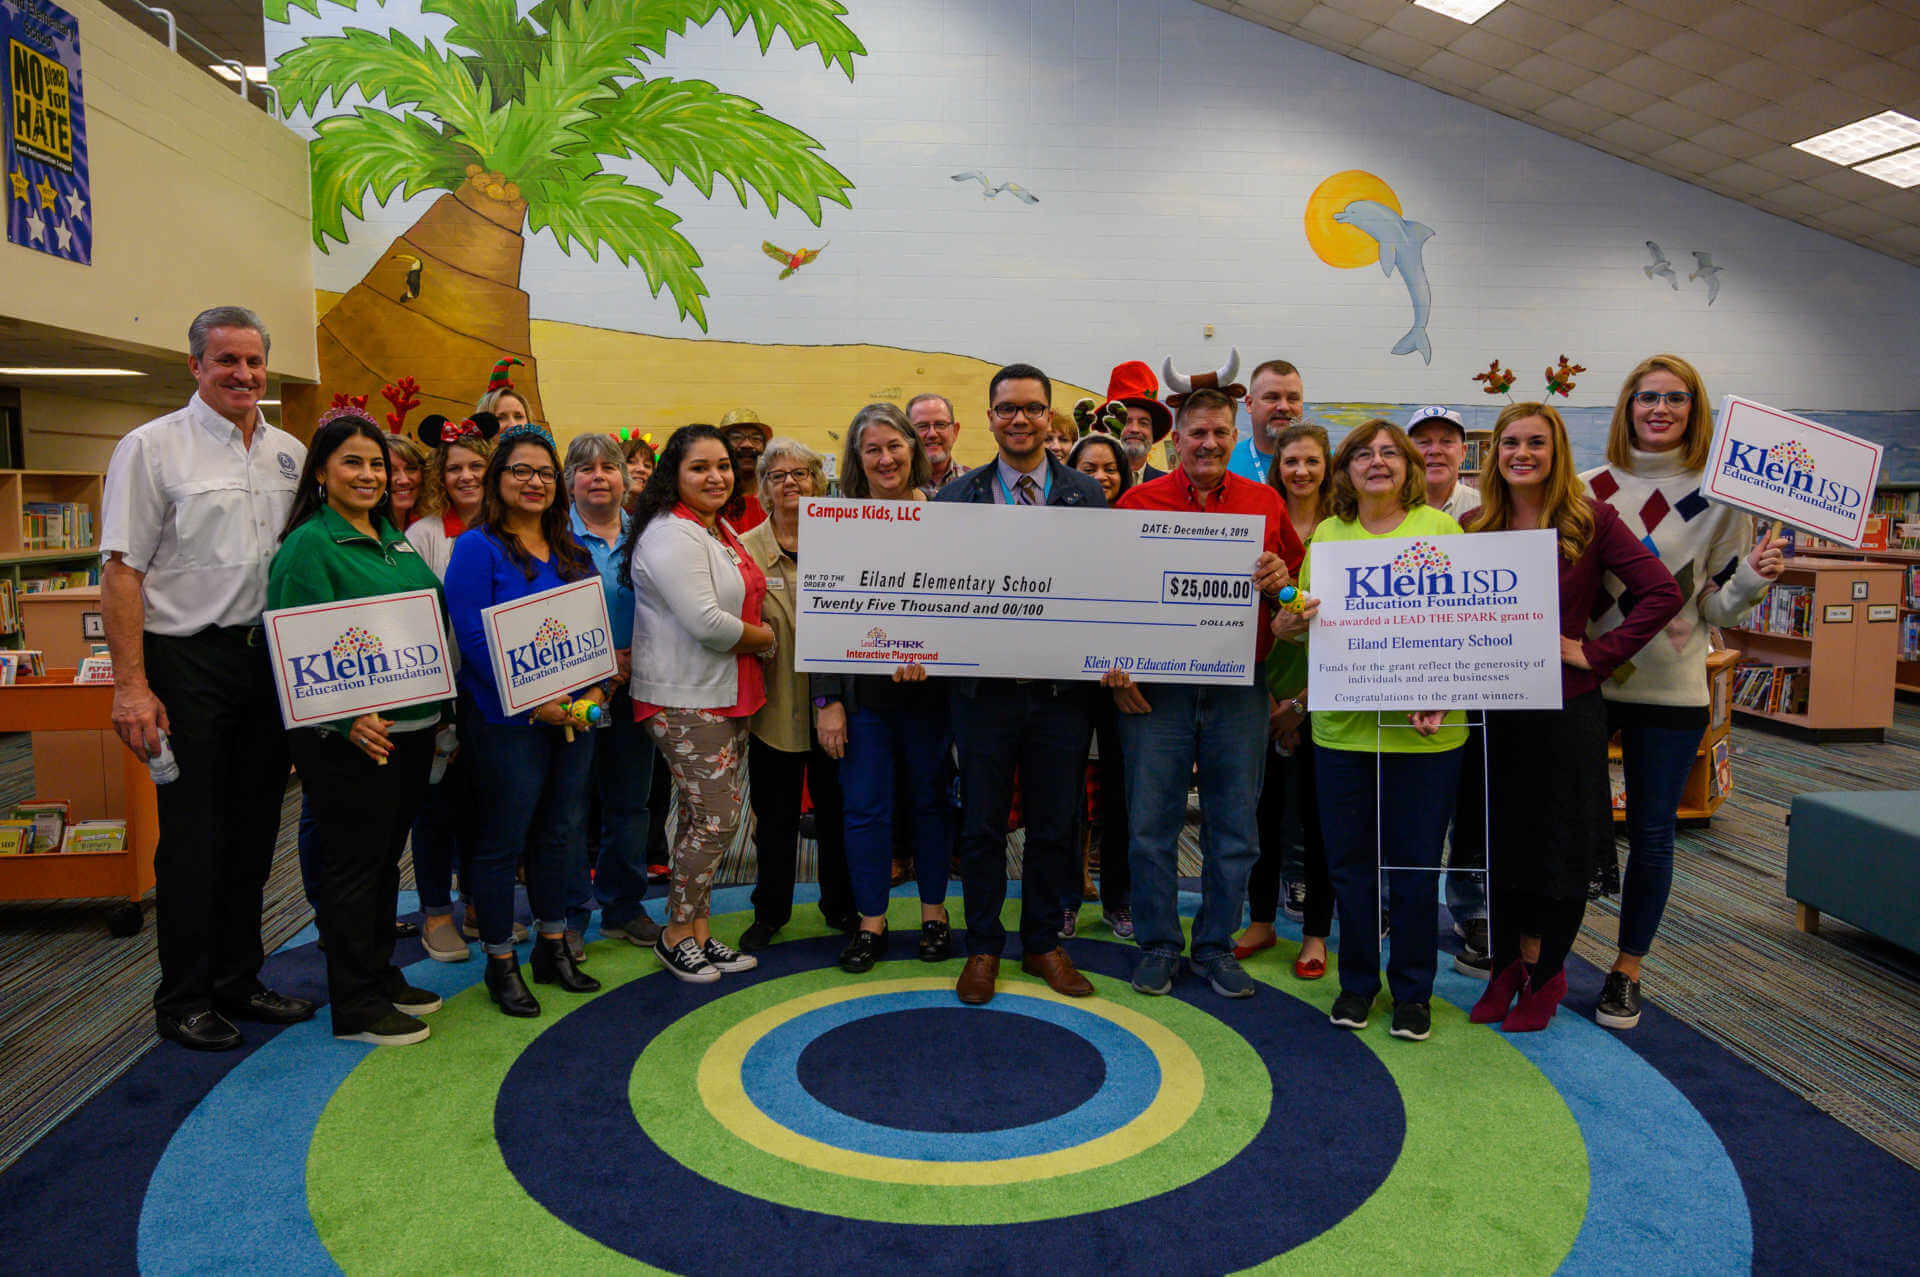 Eiland Elementary Receives $25,000 Grant for Interactive Playground